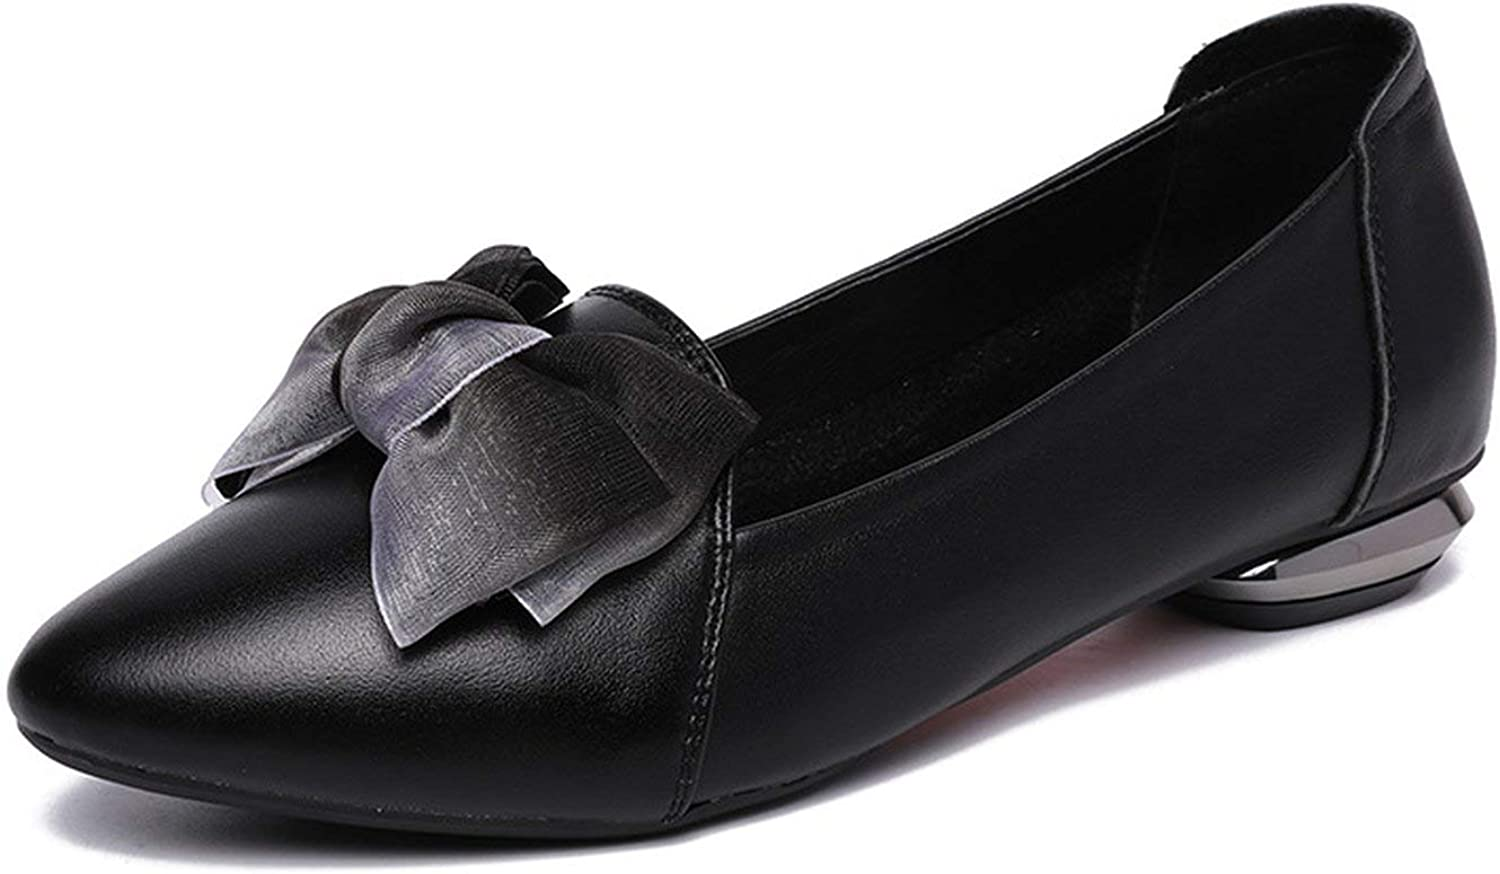 Flats Woman Bow Tie Pointed Toe Shallow Women shoes Genuine Leather Comfortable shoes